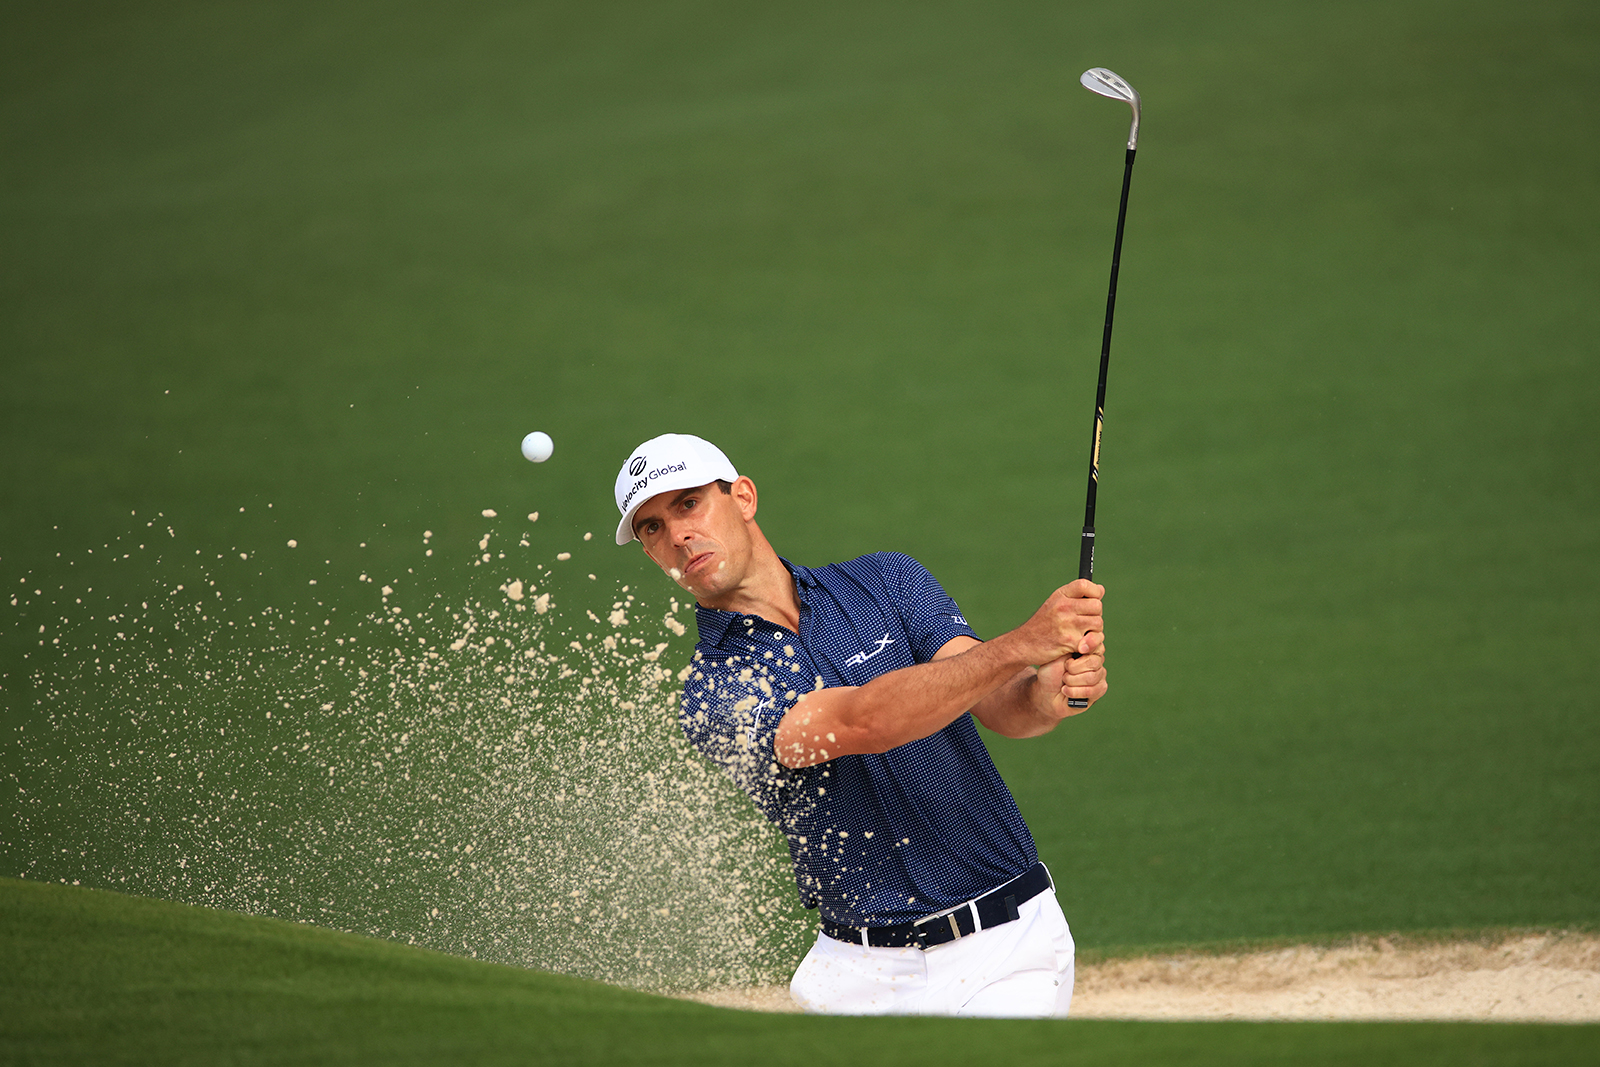 A day after playing a shot from the water with socks and shoes removed, Billy Horschel is back at it again